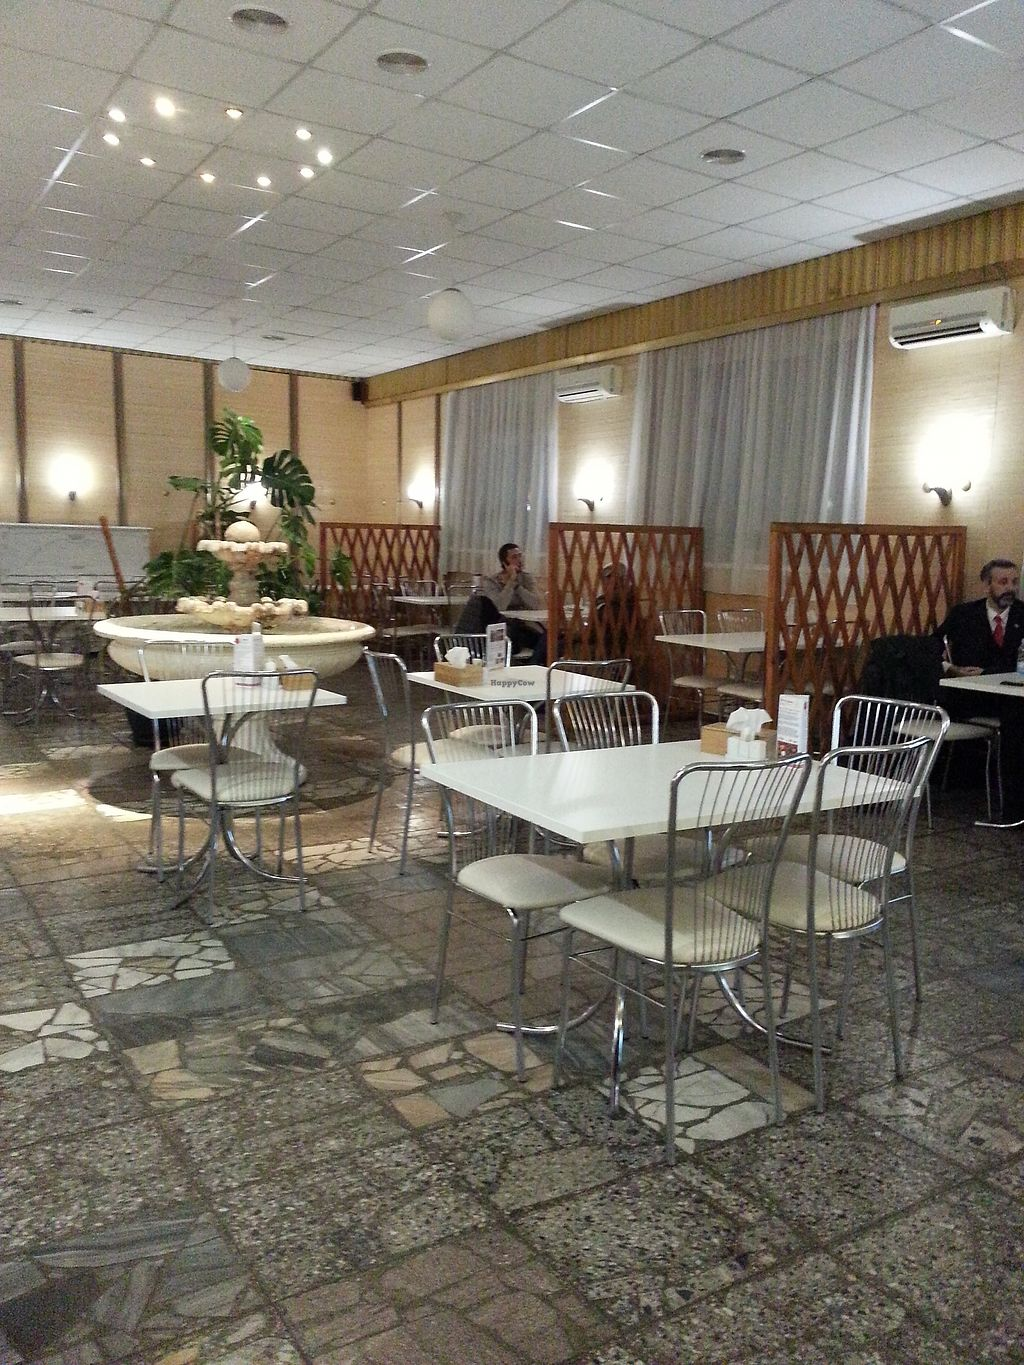 "Photo of Ayurveda Cafe  by <a href=""/members/profile/KA%26DinKyiv"">KA&DinKyiv</a> <br/>Looking toward the main dining area from the servery/counter <br/> October 12, 2017  - <a href='/contact/abuse/image/37183/314485'>Report</a>"